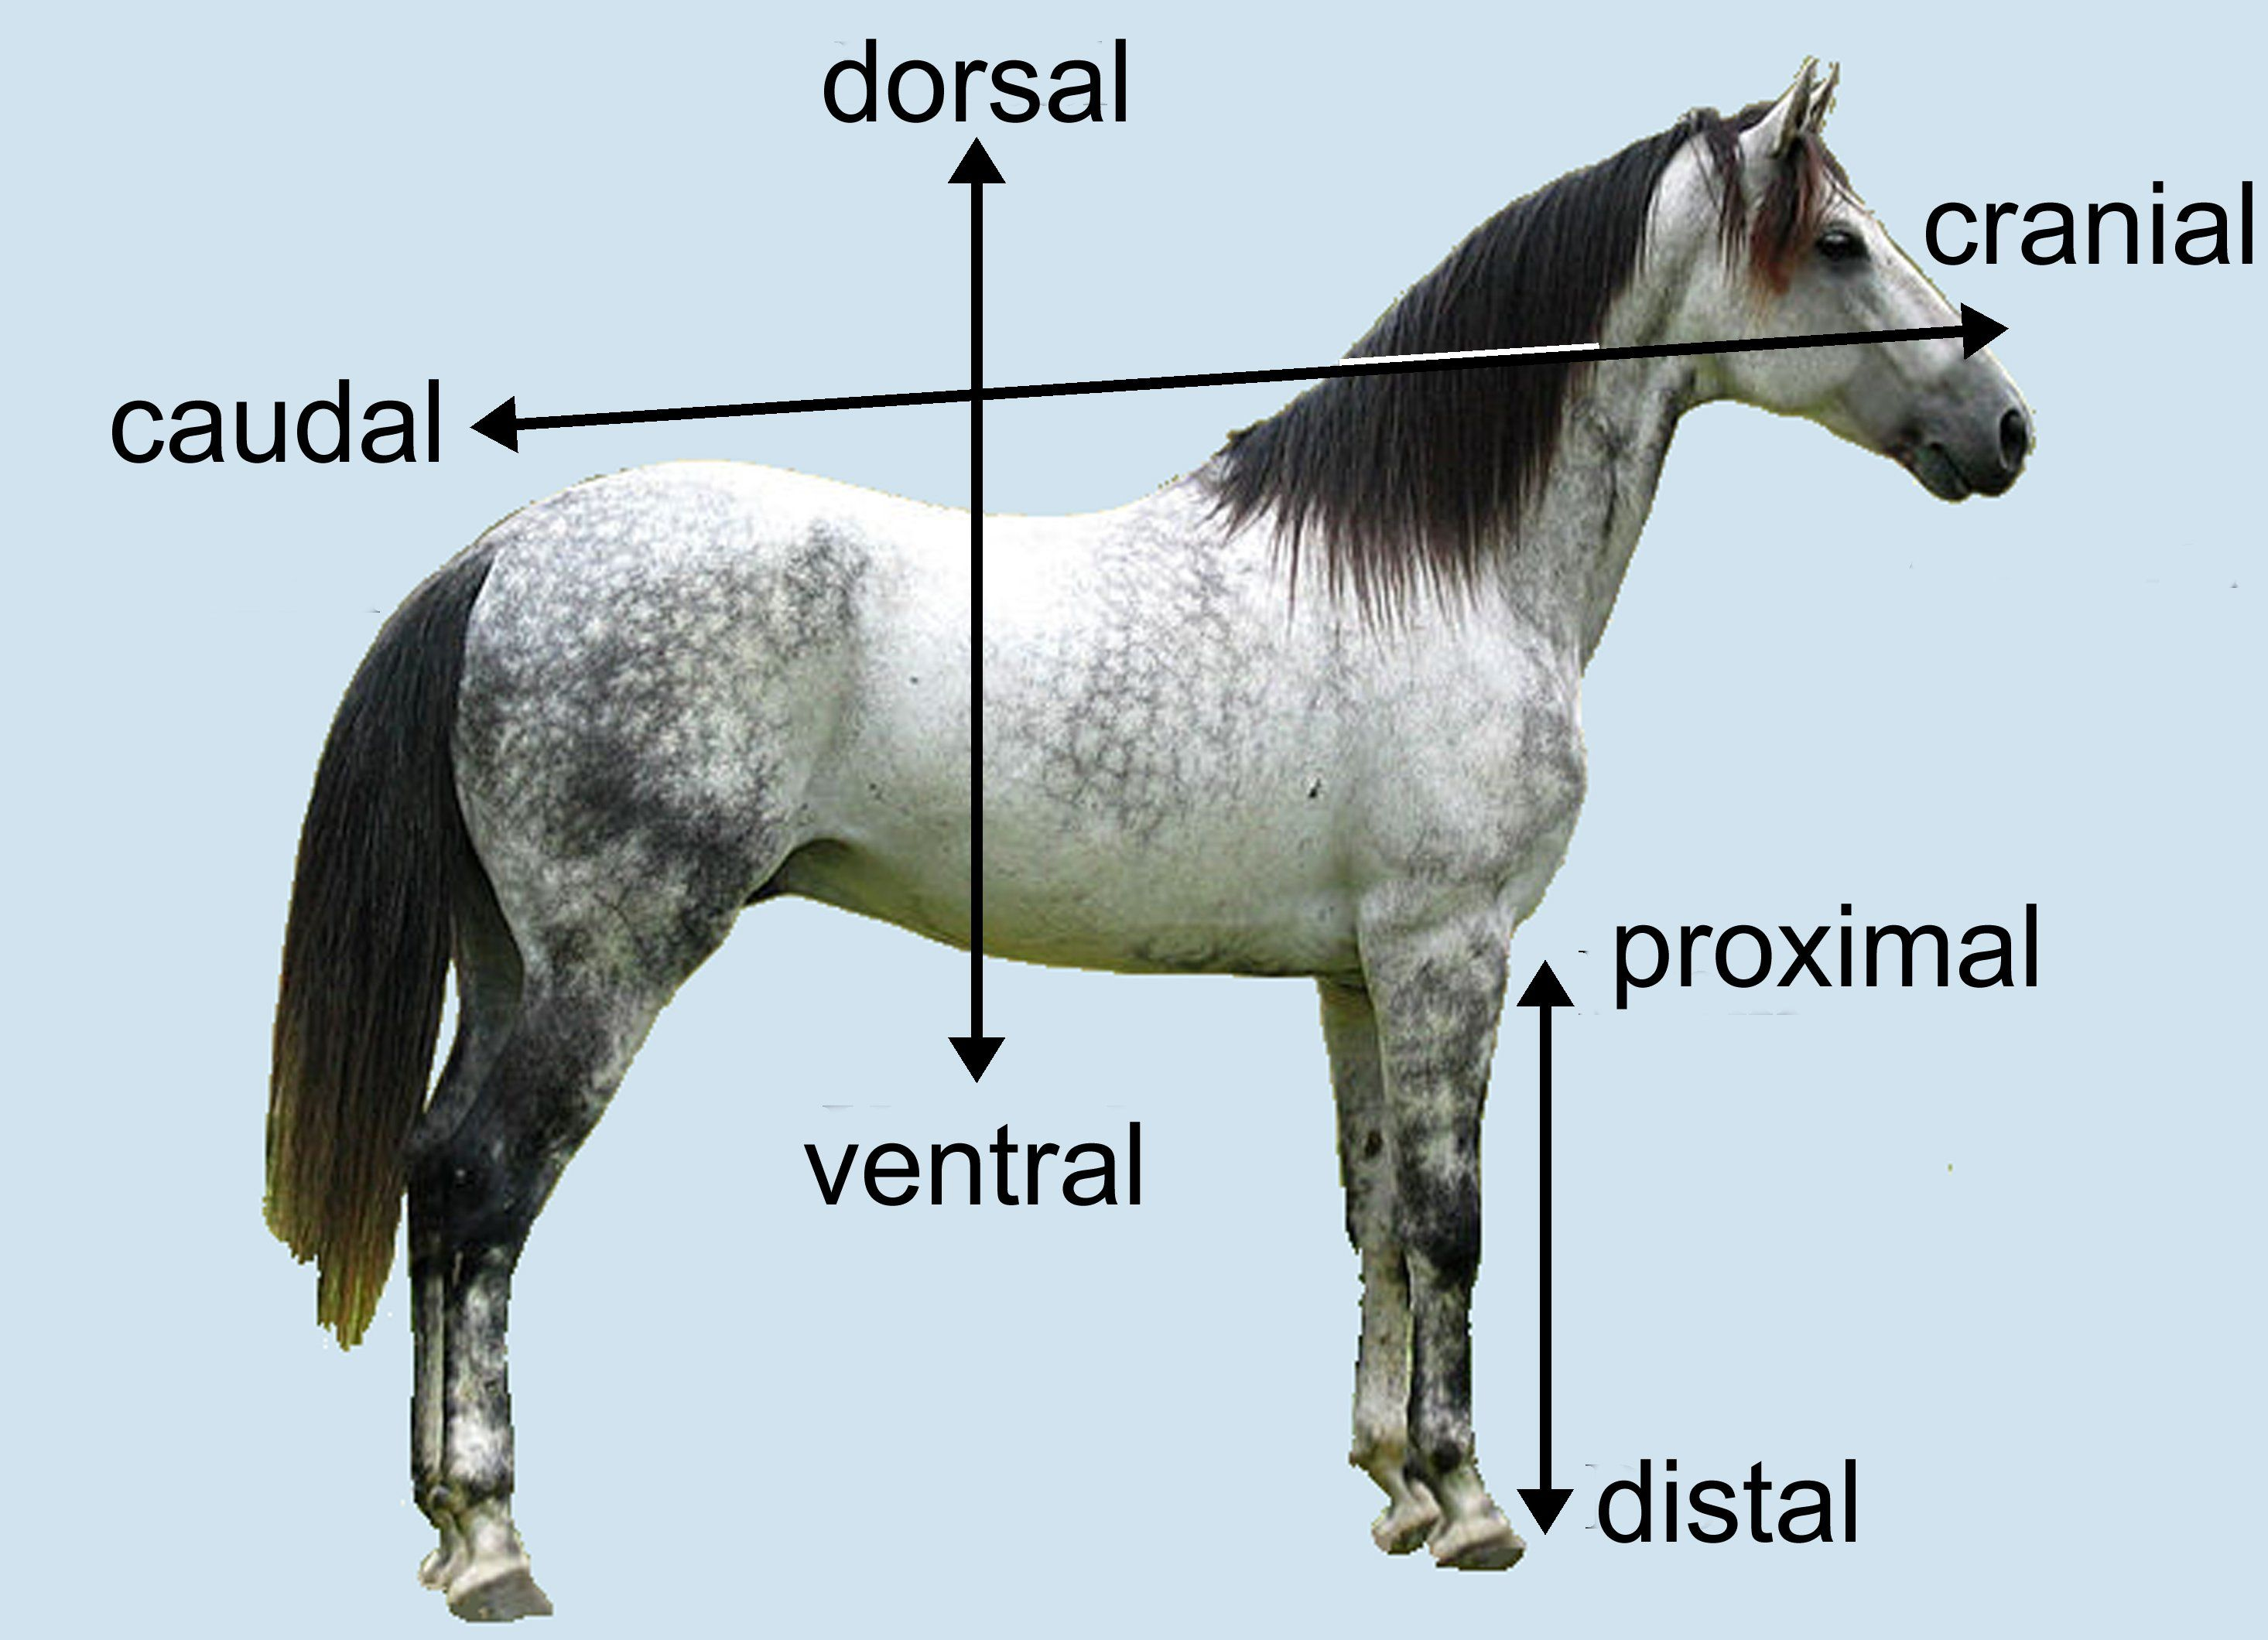 dorsal ventral anterior posterior diagram - Google Search ...